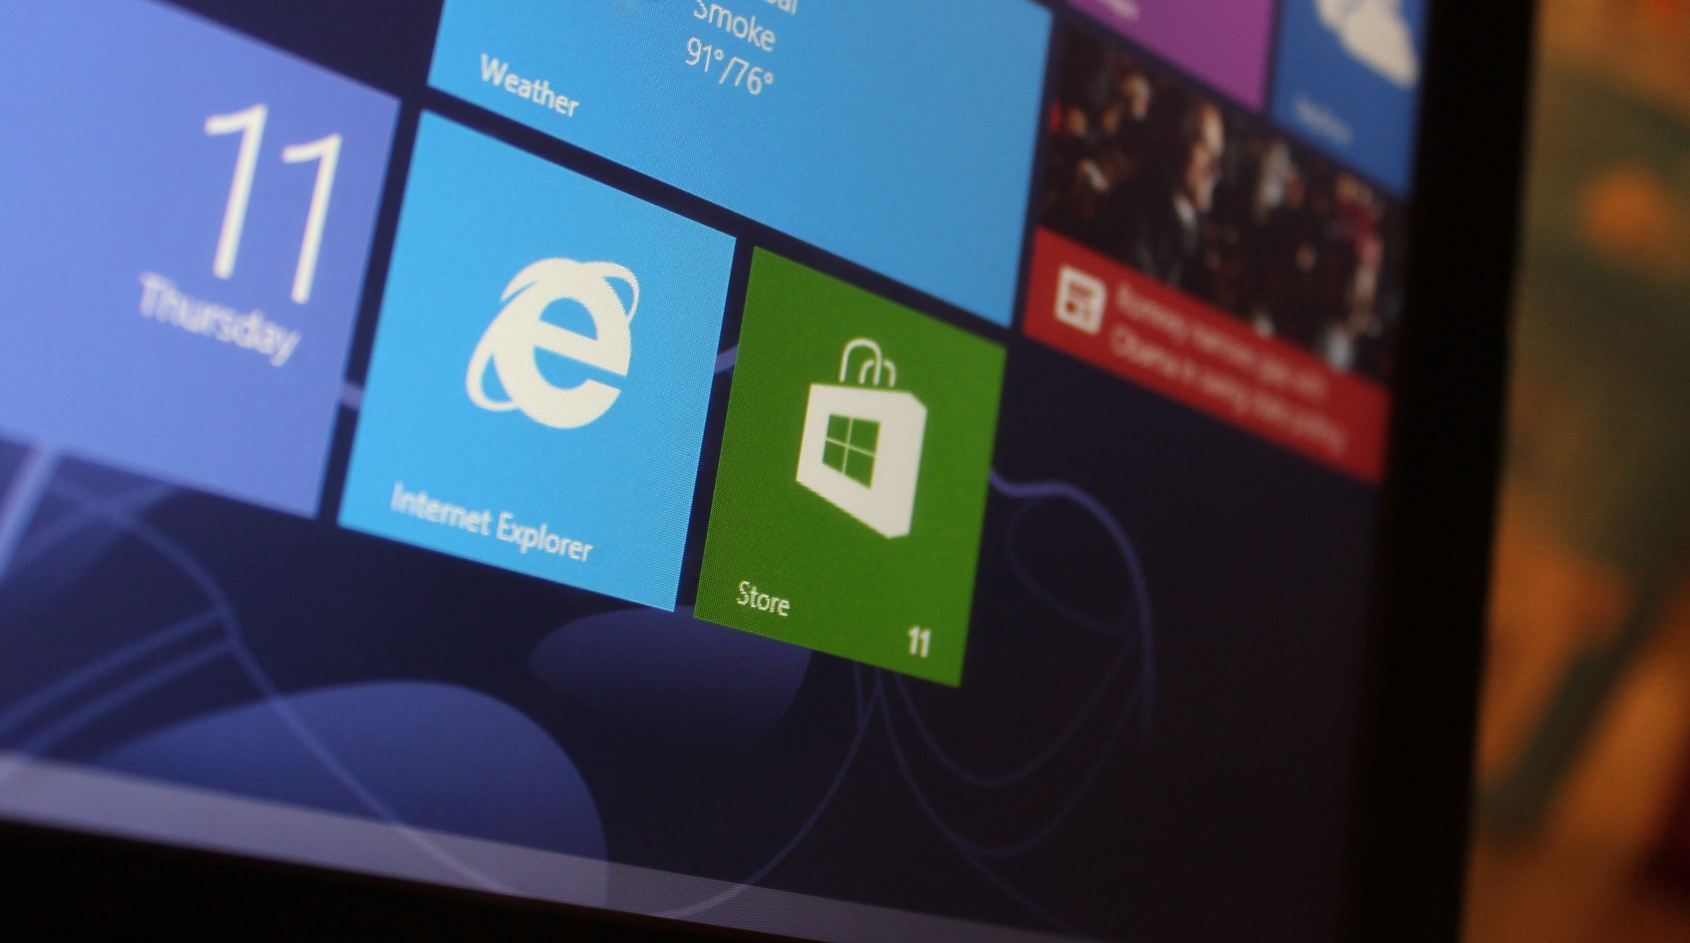 Windows 8: The thing I love and the thing I hate